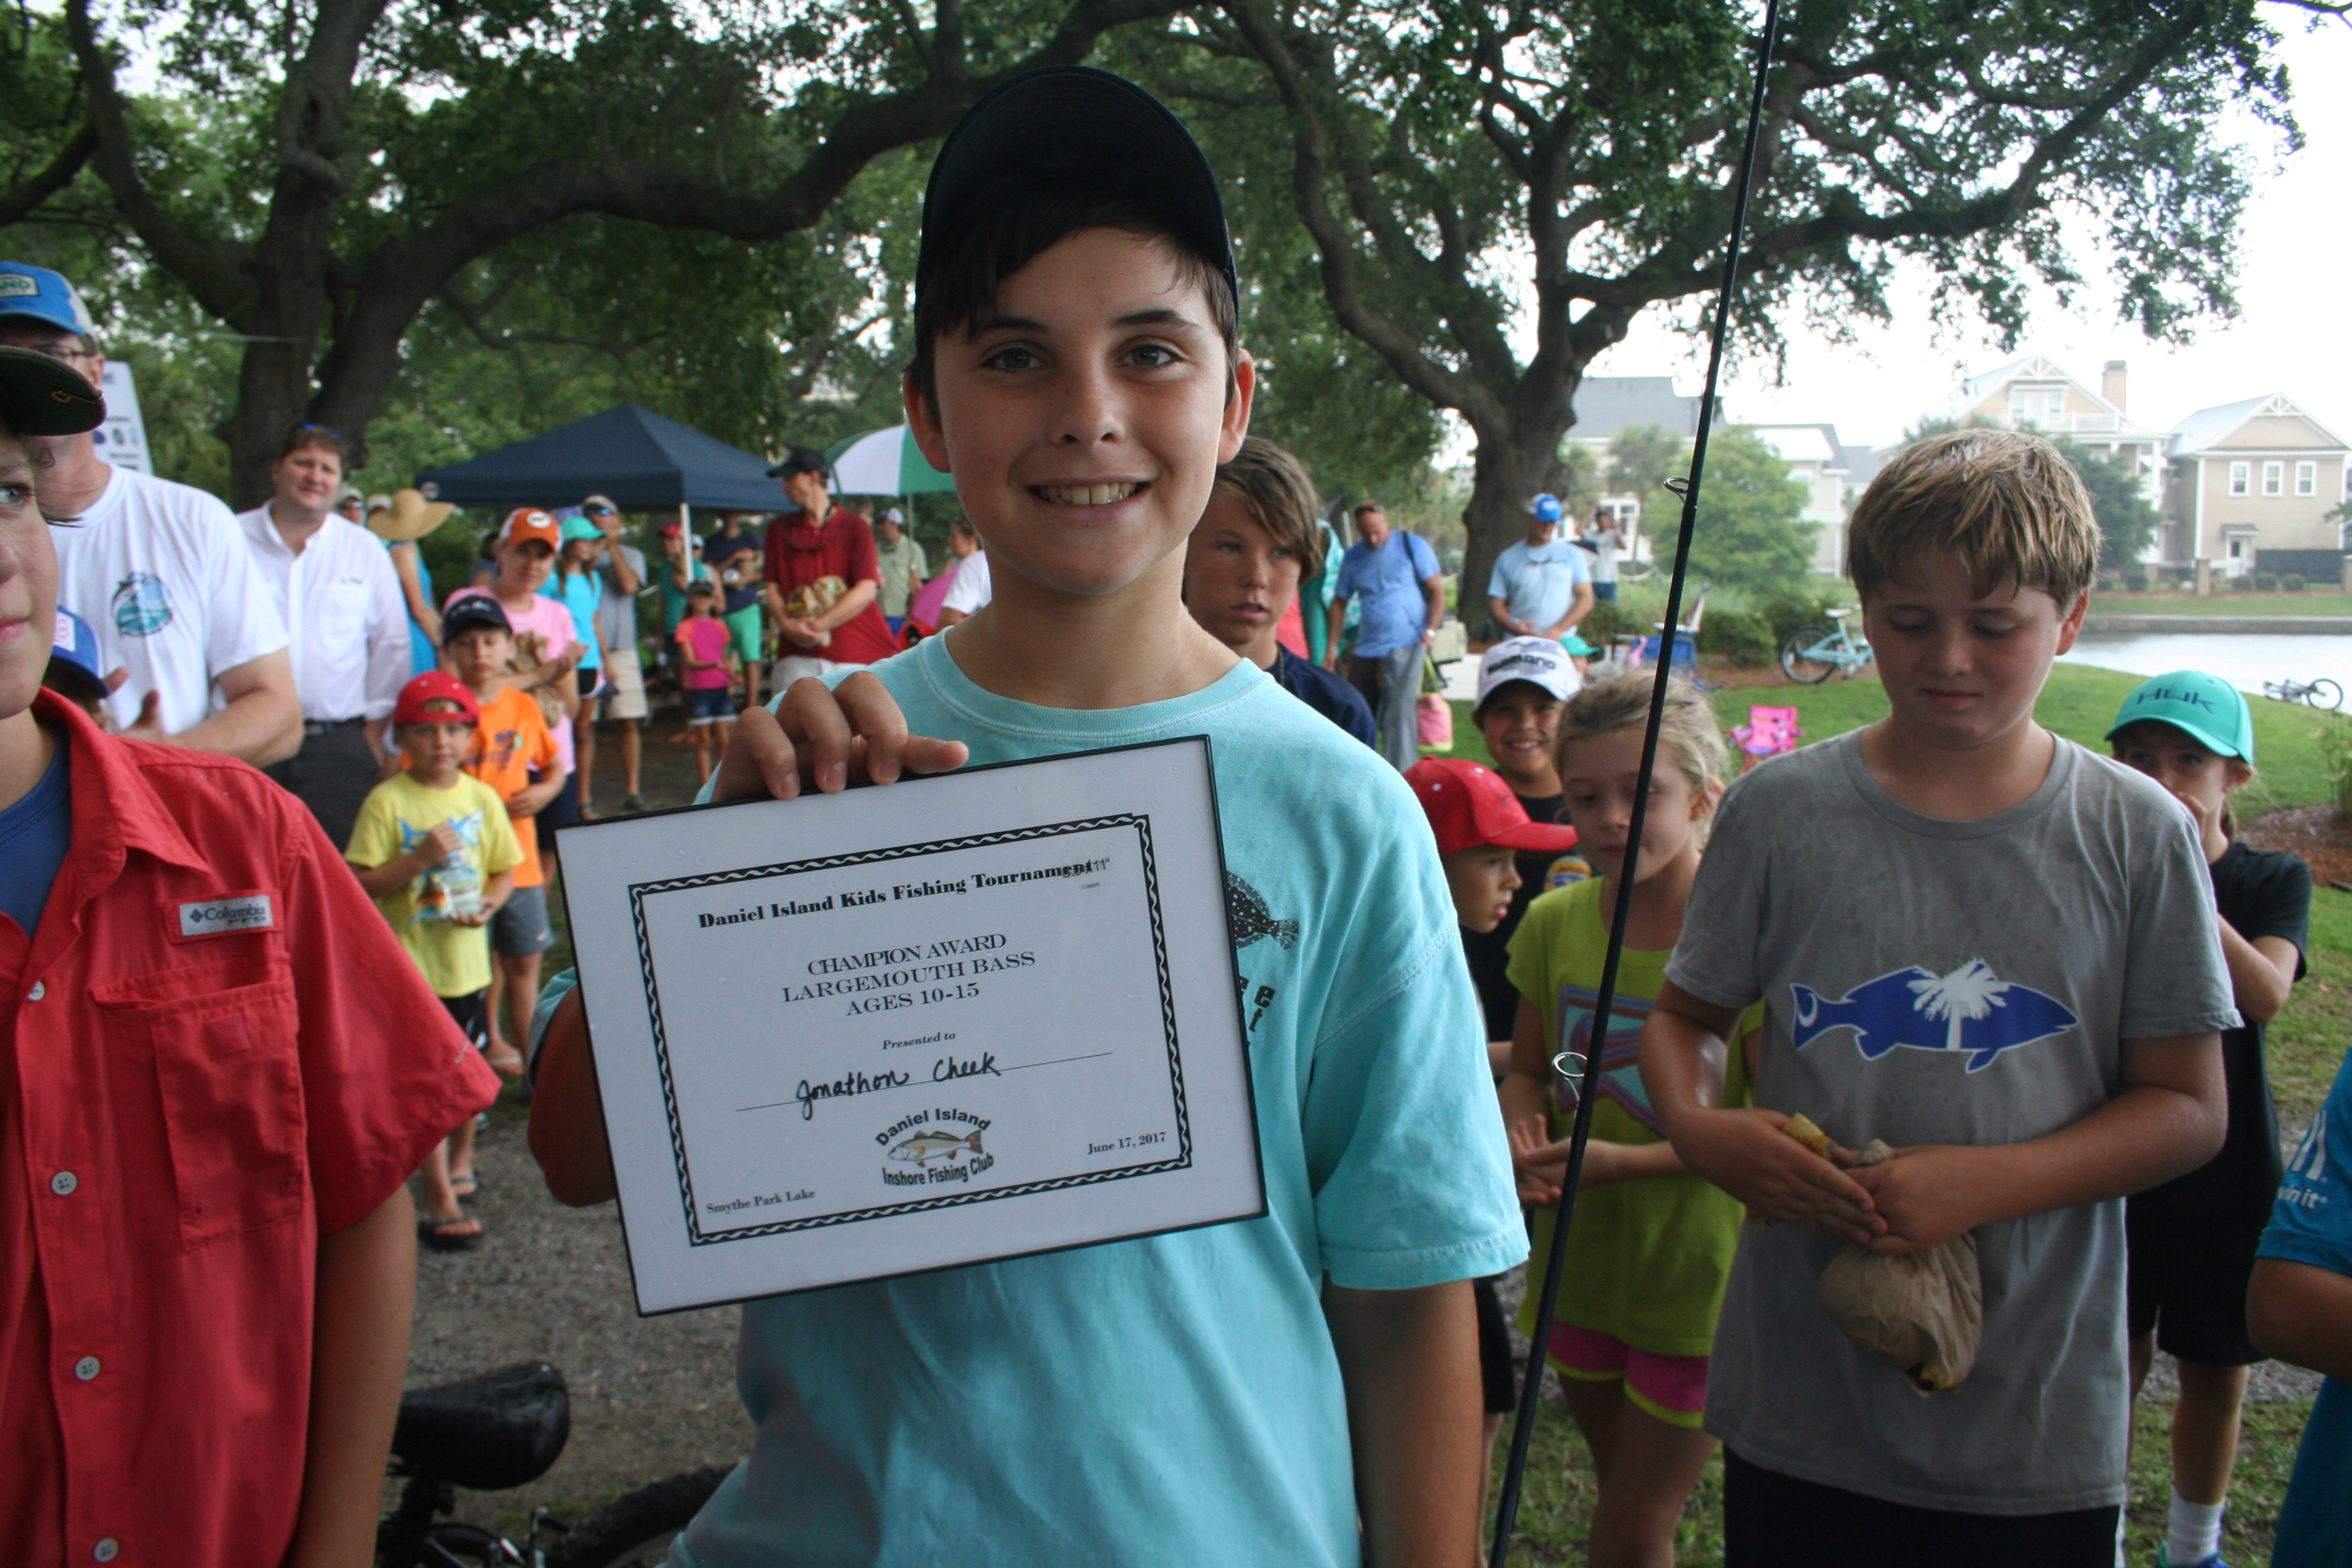 In the Largemouth Bass 10-15 year old age category, the Champion Award went to Jonathon Cheek. The first runner-up was Ben Jacobs.